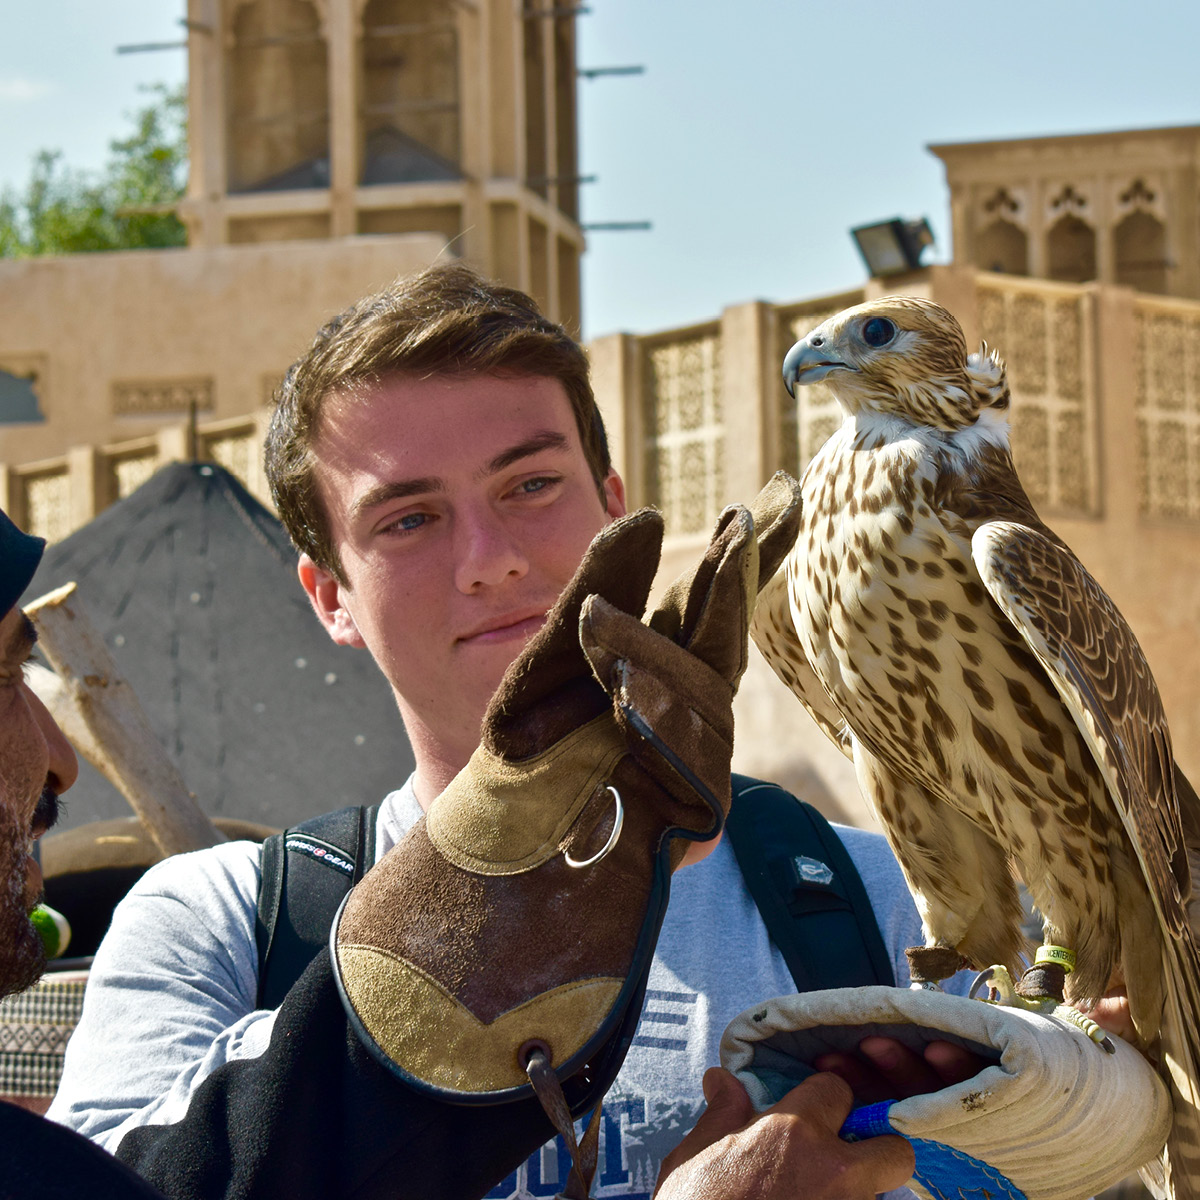 A UD student stands alongside a falcon and its trainer.